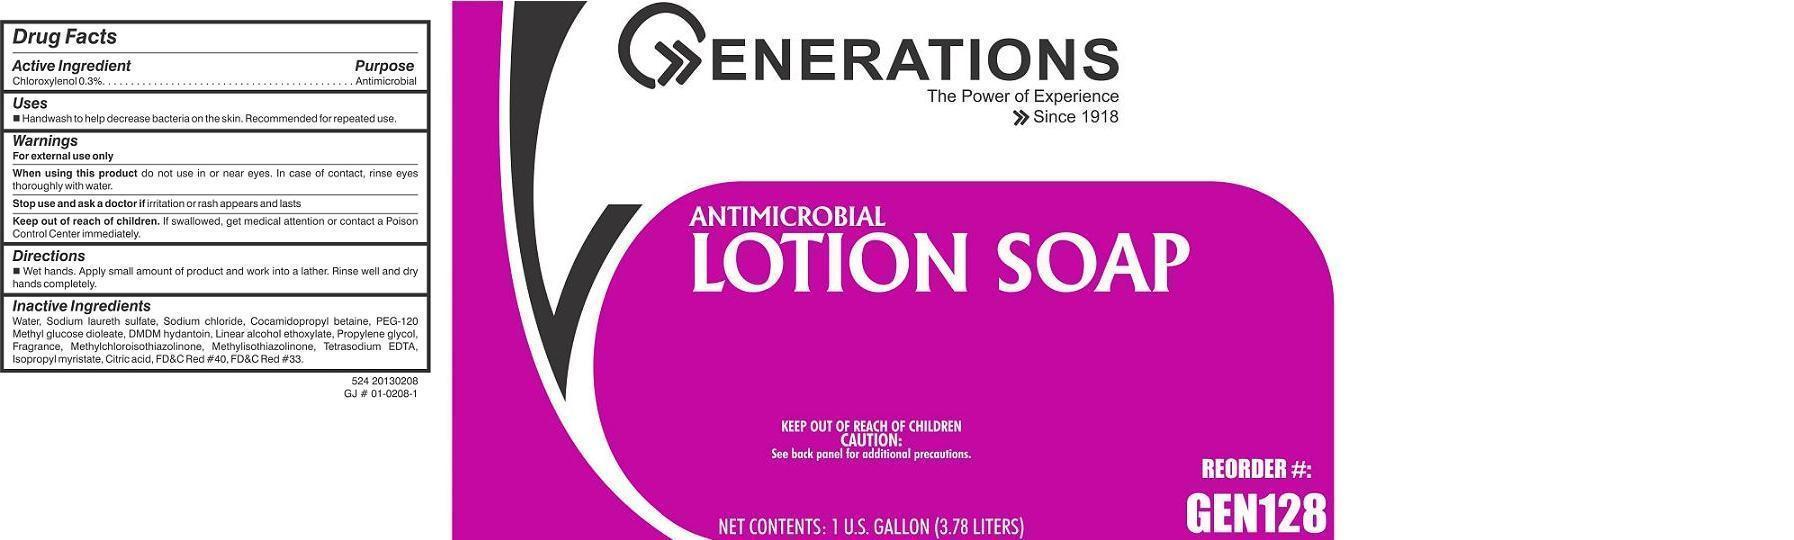 Generations Antimicrobial (Chloroxylenol) Soap [Cole Papers]